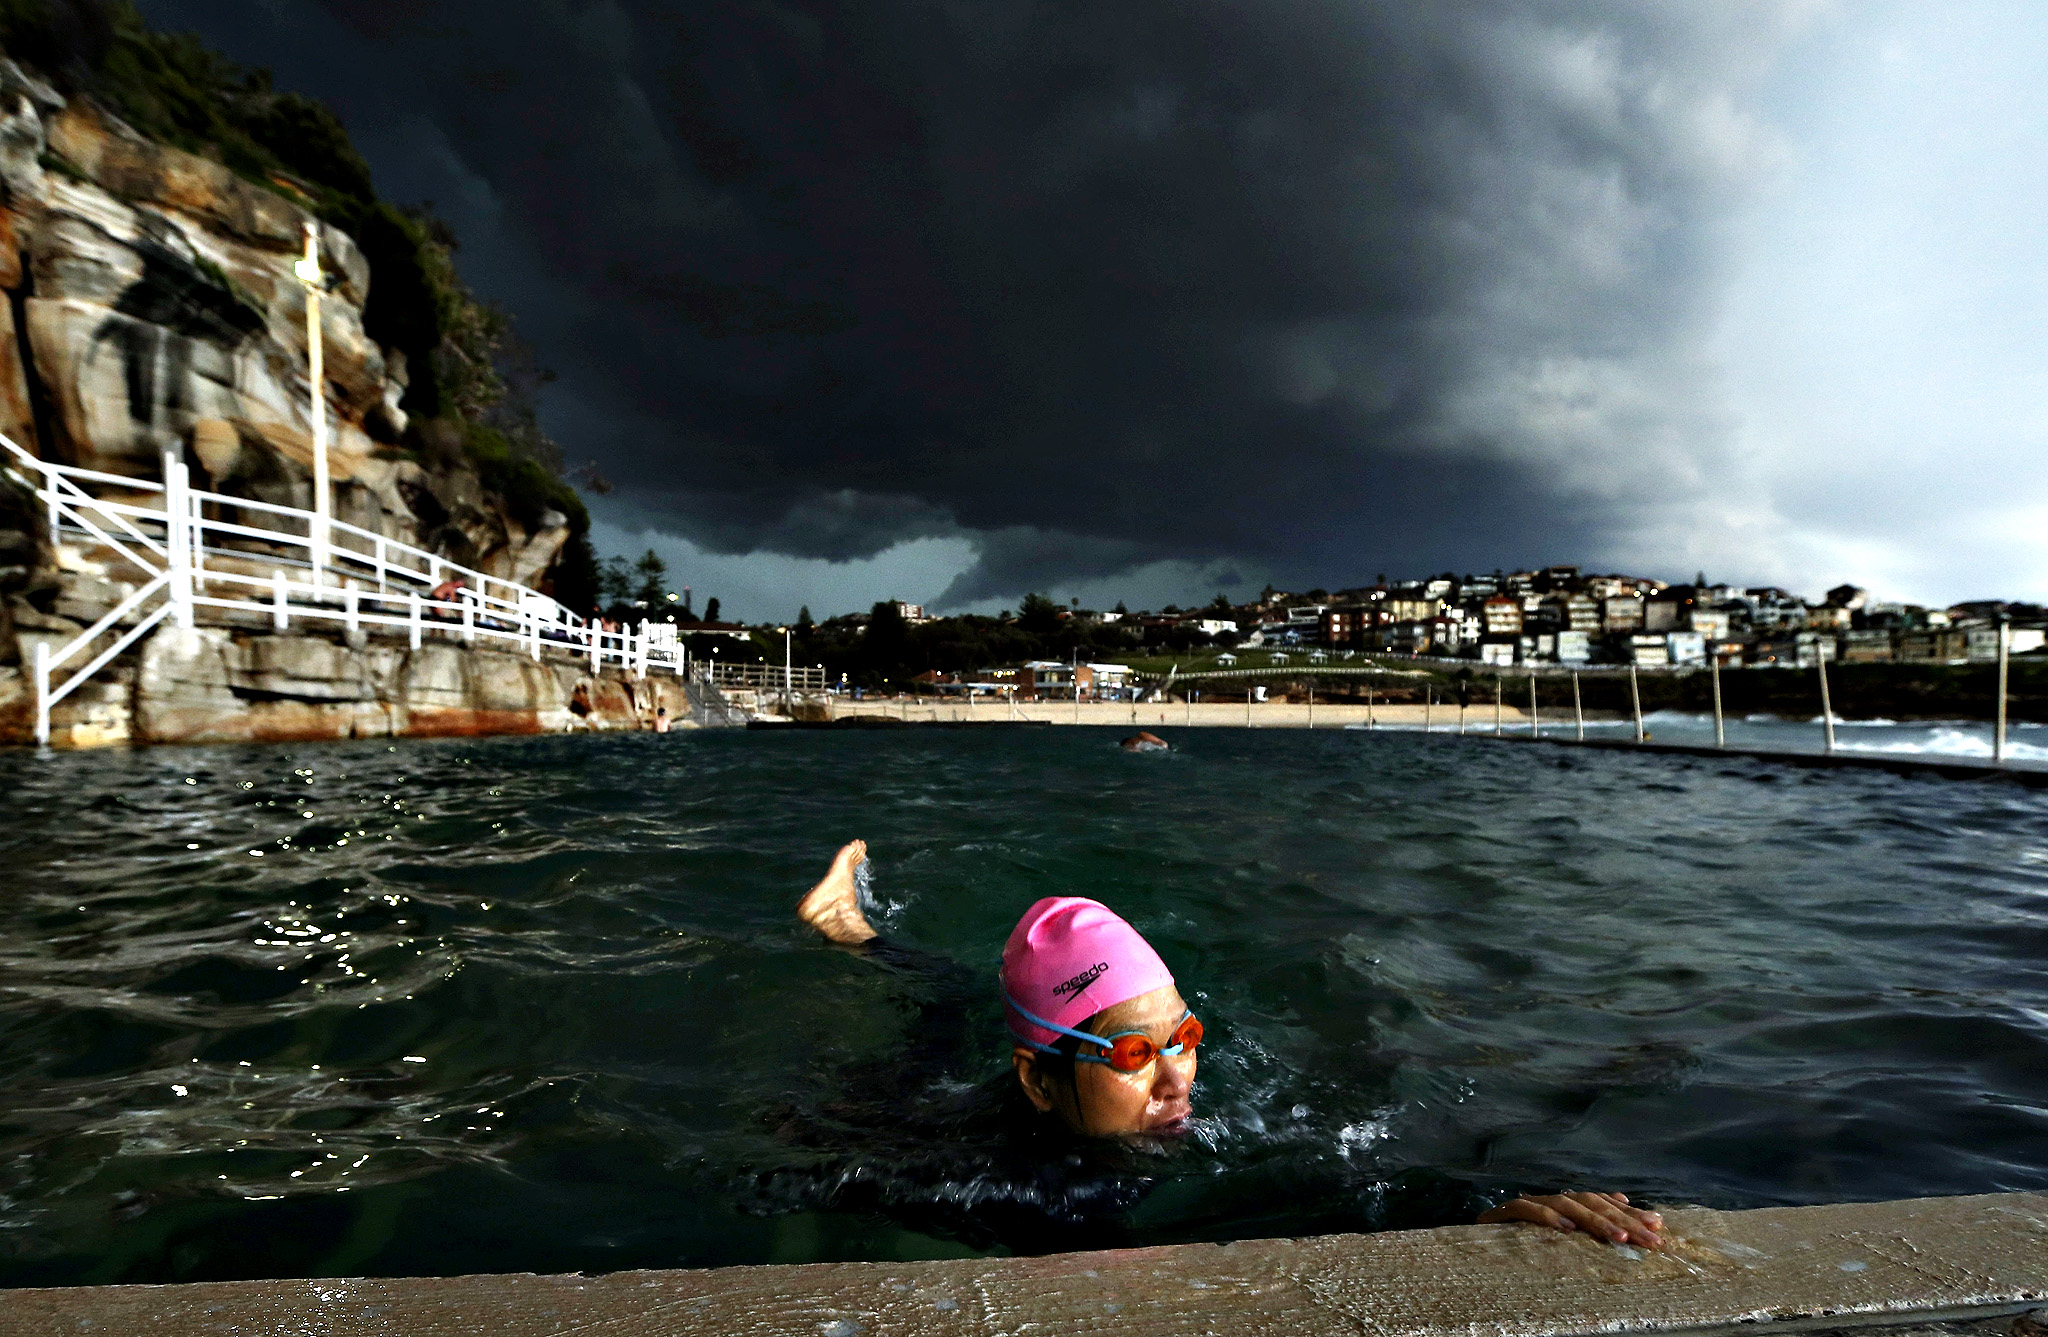 A swimmer swims laps in Bronte Ocean Pool as a severe storm hits Sydney at Bronte Beach on October 13, 2014 in Sydney, Australia.